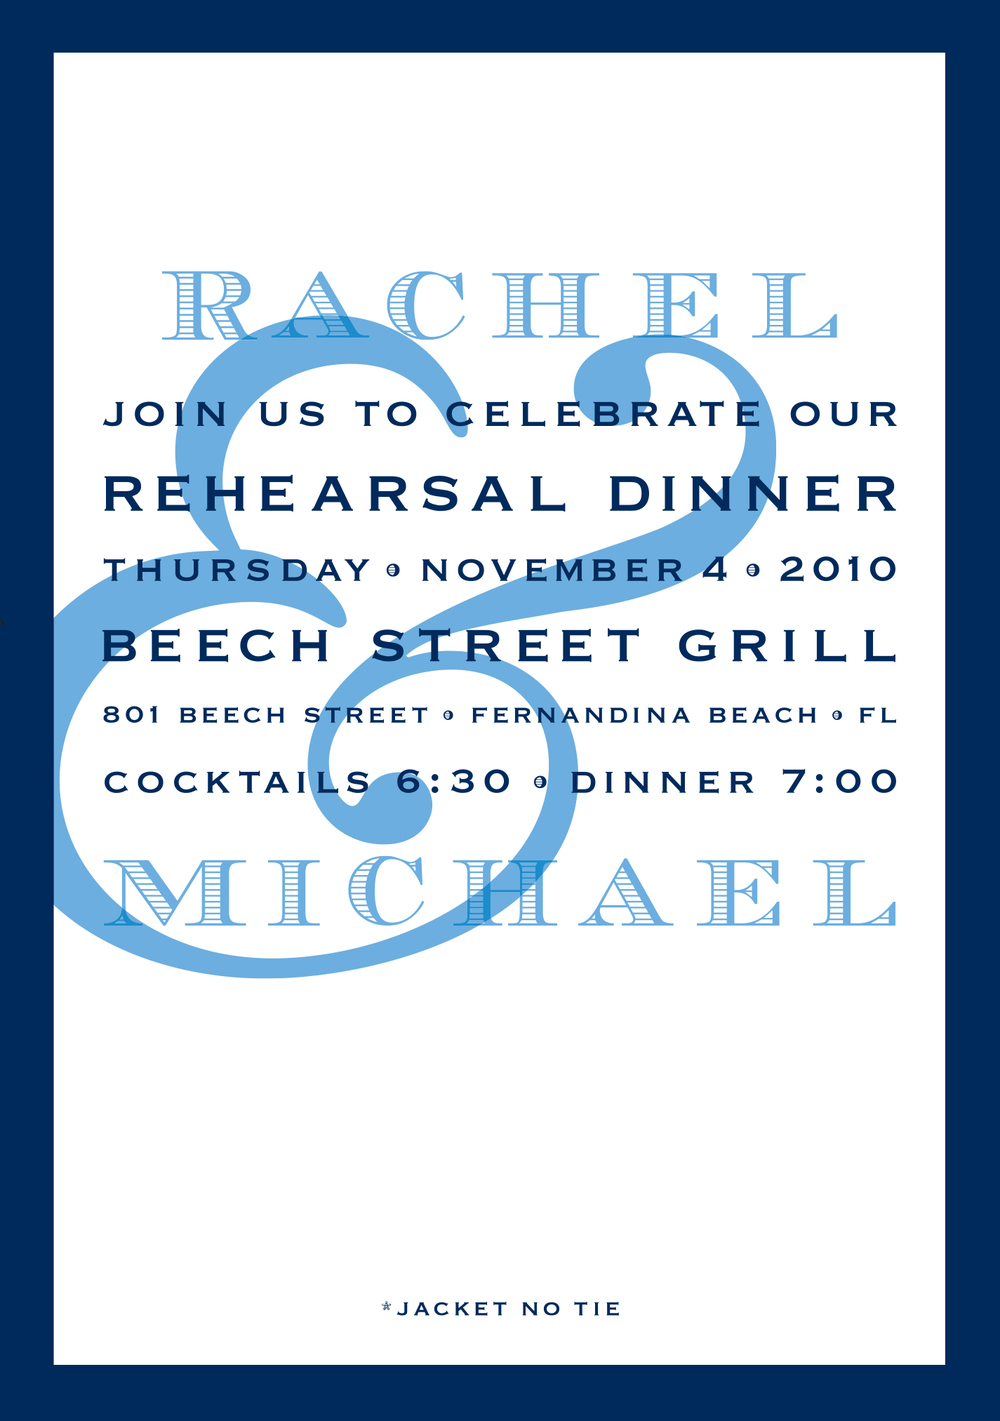 Rehearsal-Dinner-Invitation_mma_4.5x6.5-copy.jpg